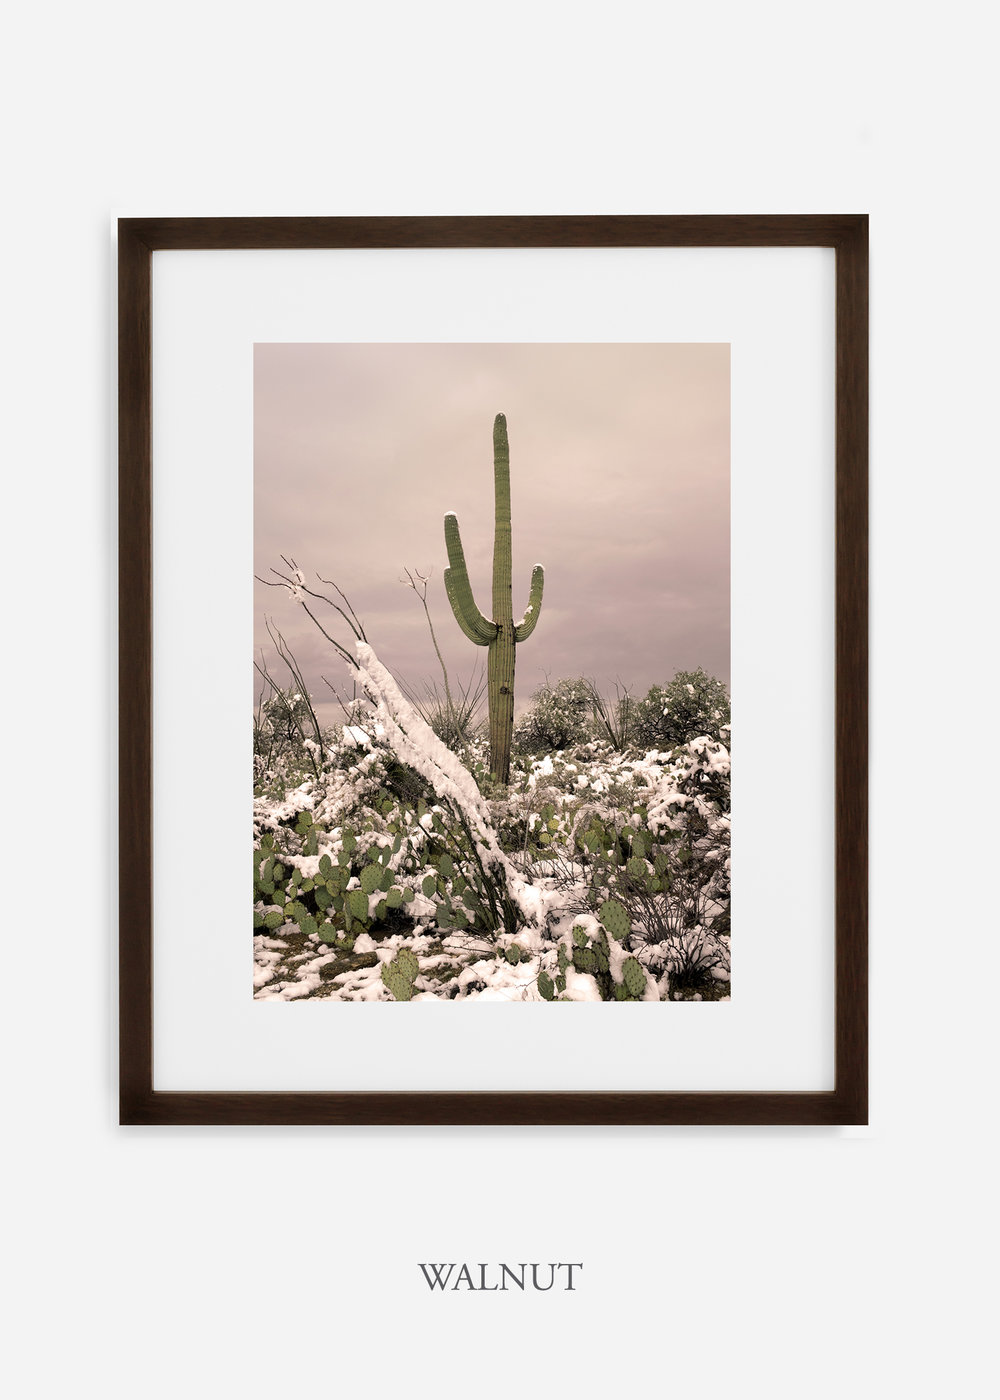 walnutframe-saguaroNo.4-wildercalifornia-art-wallart-cactusprint-homedecor-prints-arizona-botanical-artwork-interiordesign.jpg